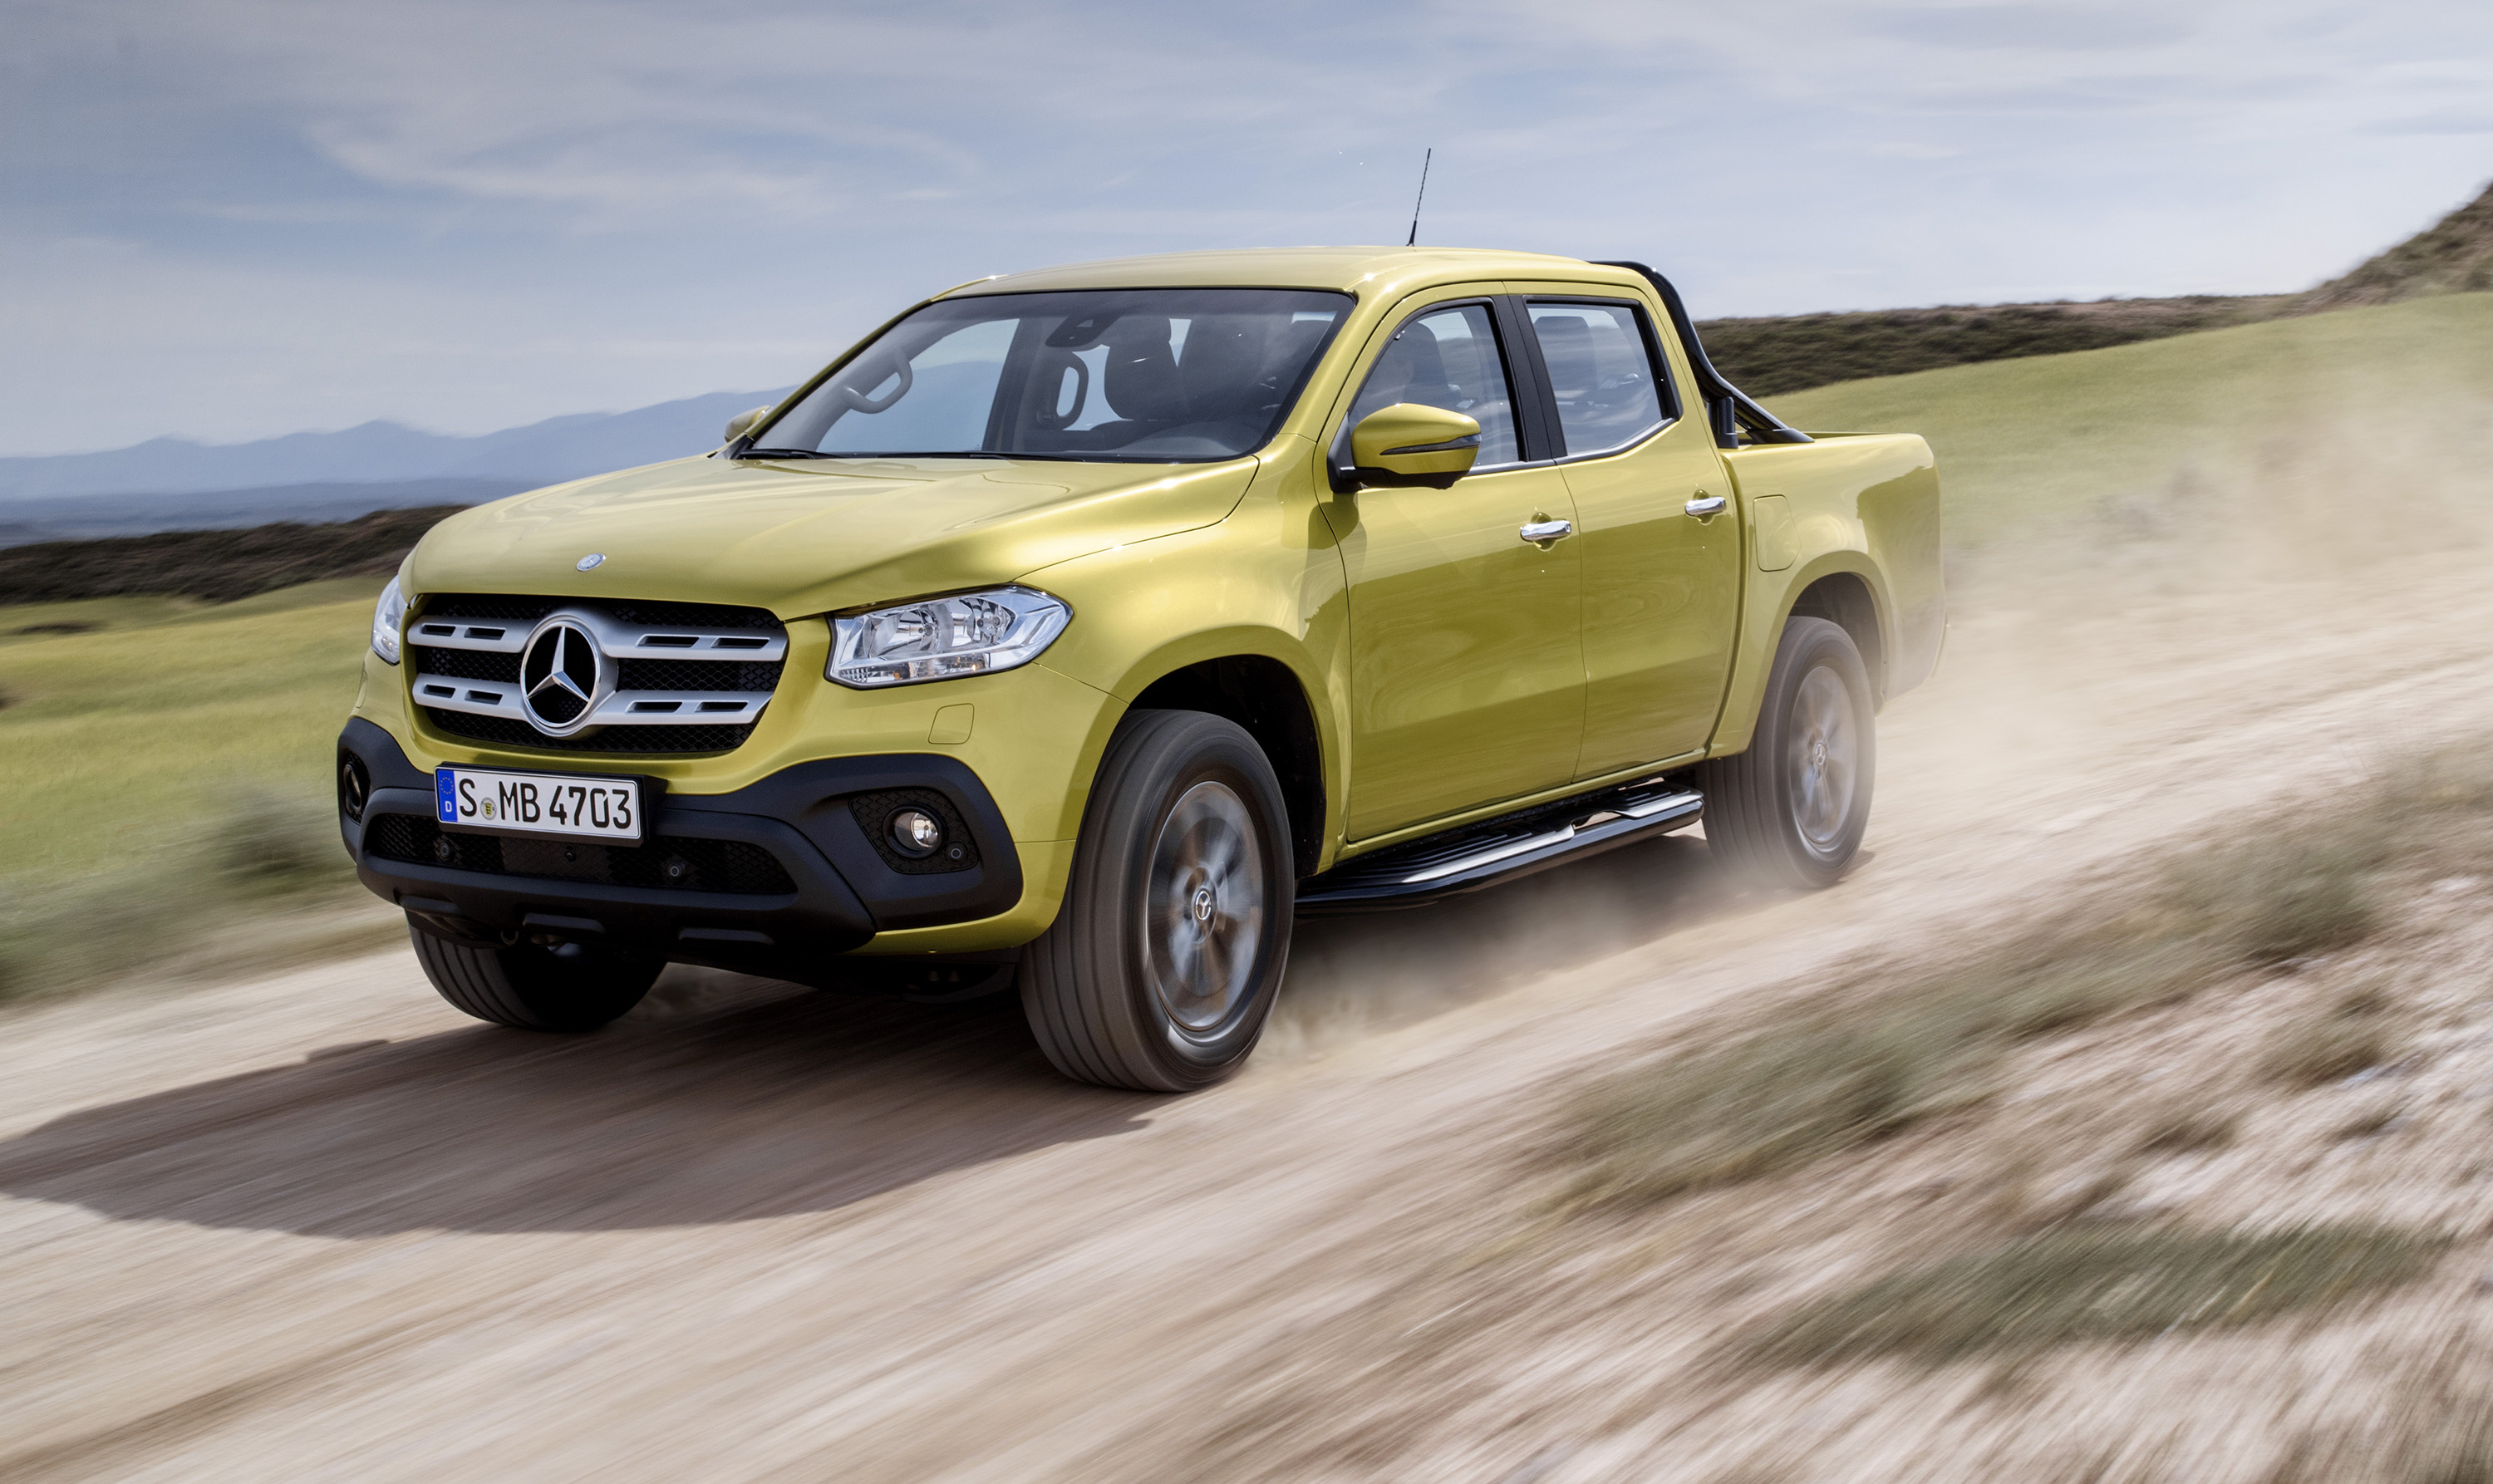 2018 mercedes benz x class revealed photos 1 of 57 for Mercedes benz gallery